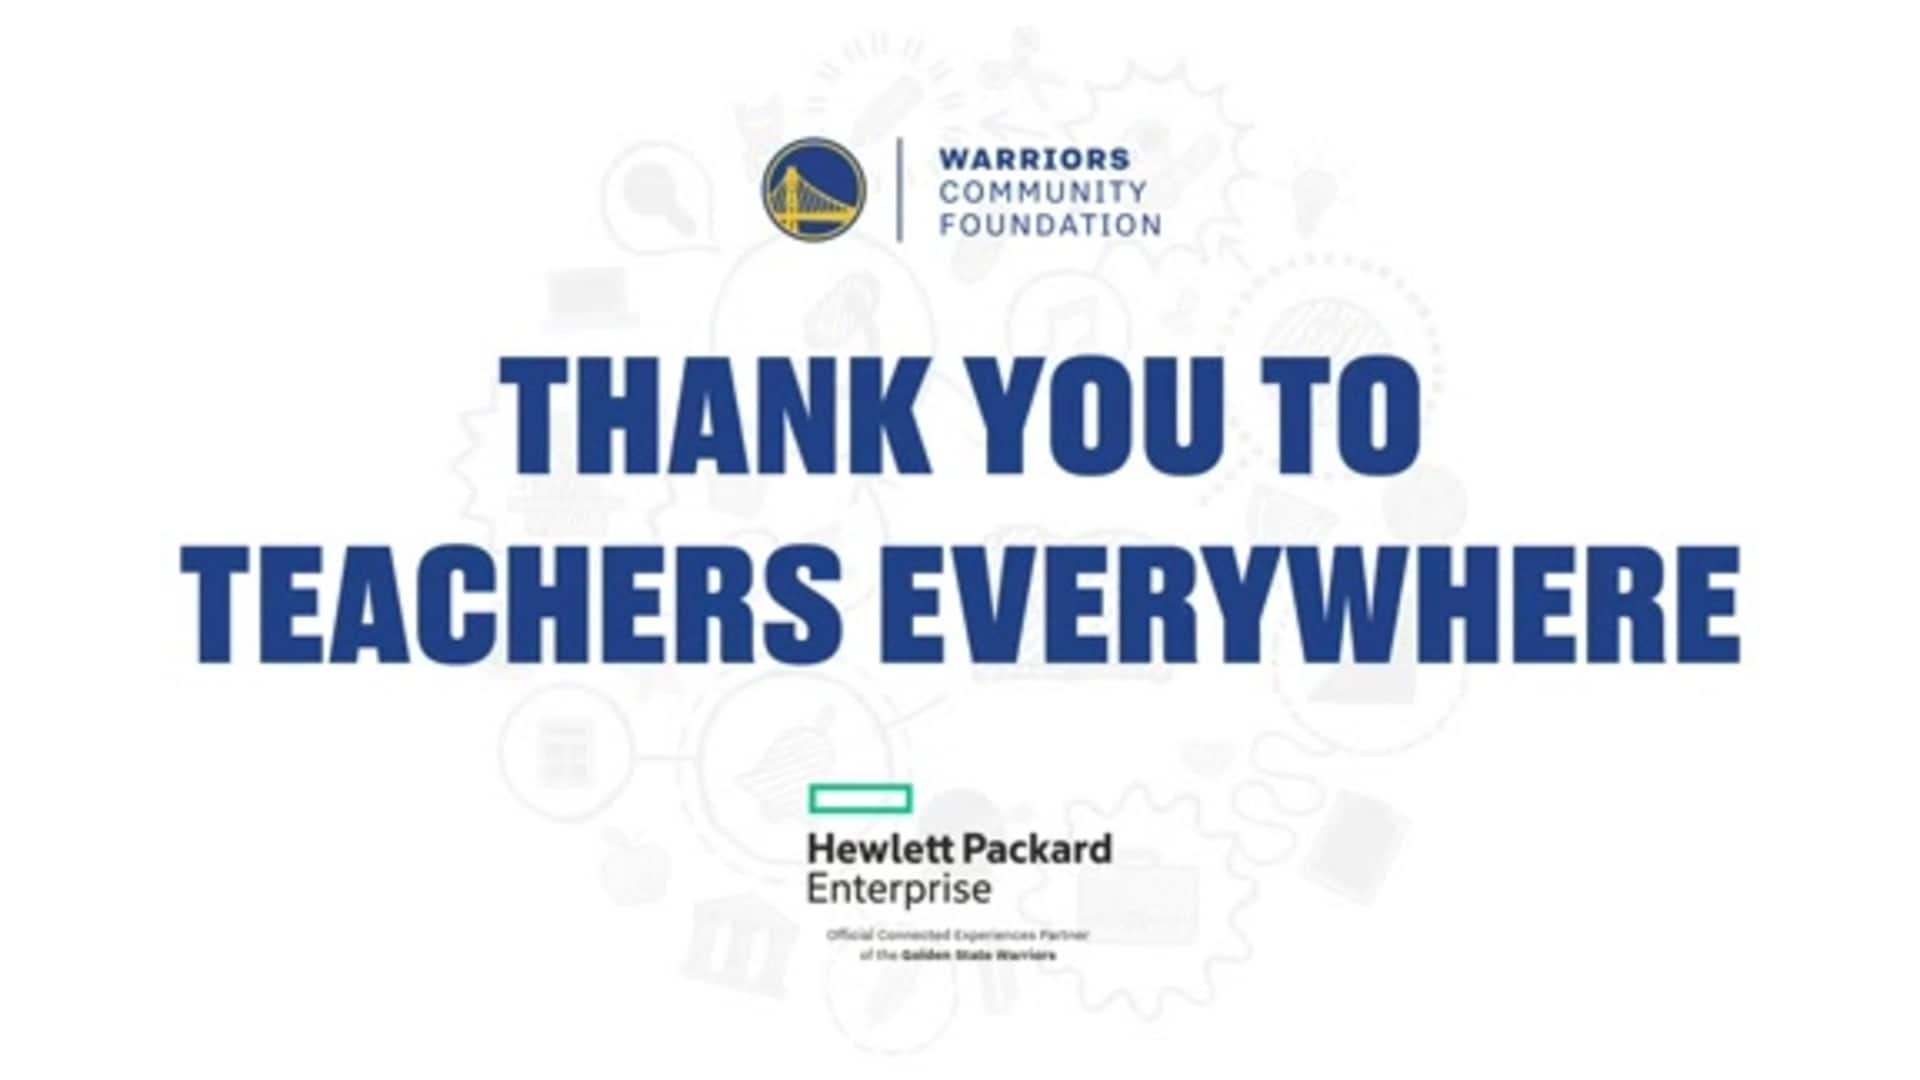 Damion Lee Surprises SF Unified School District with $125,000 Donation from Warriors Community Foundation and HPE